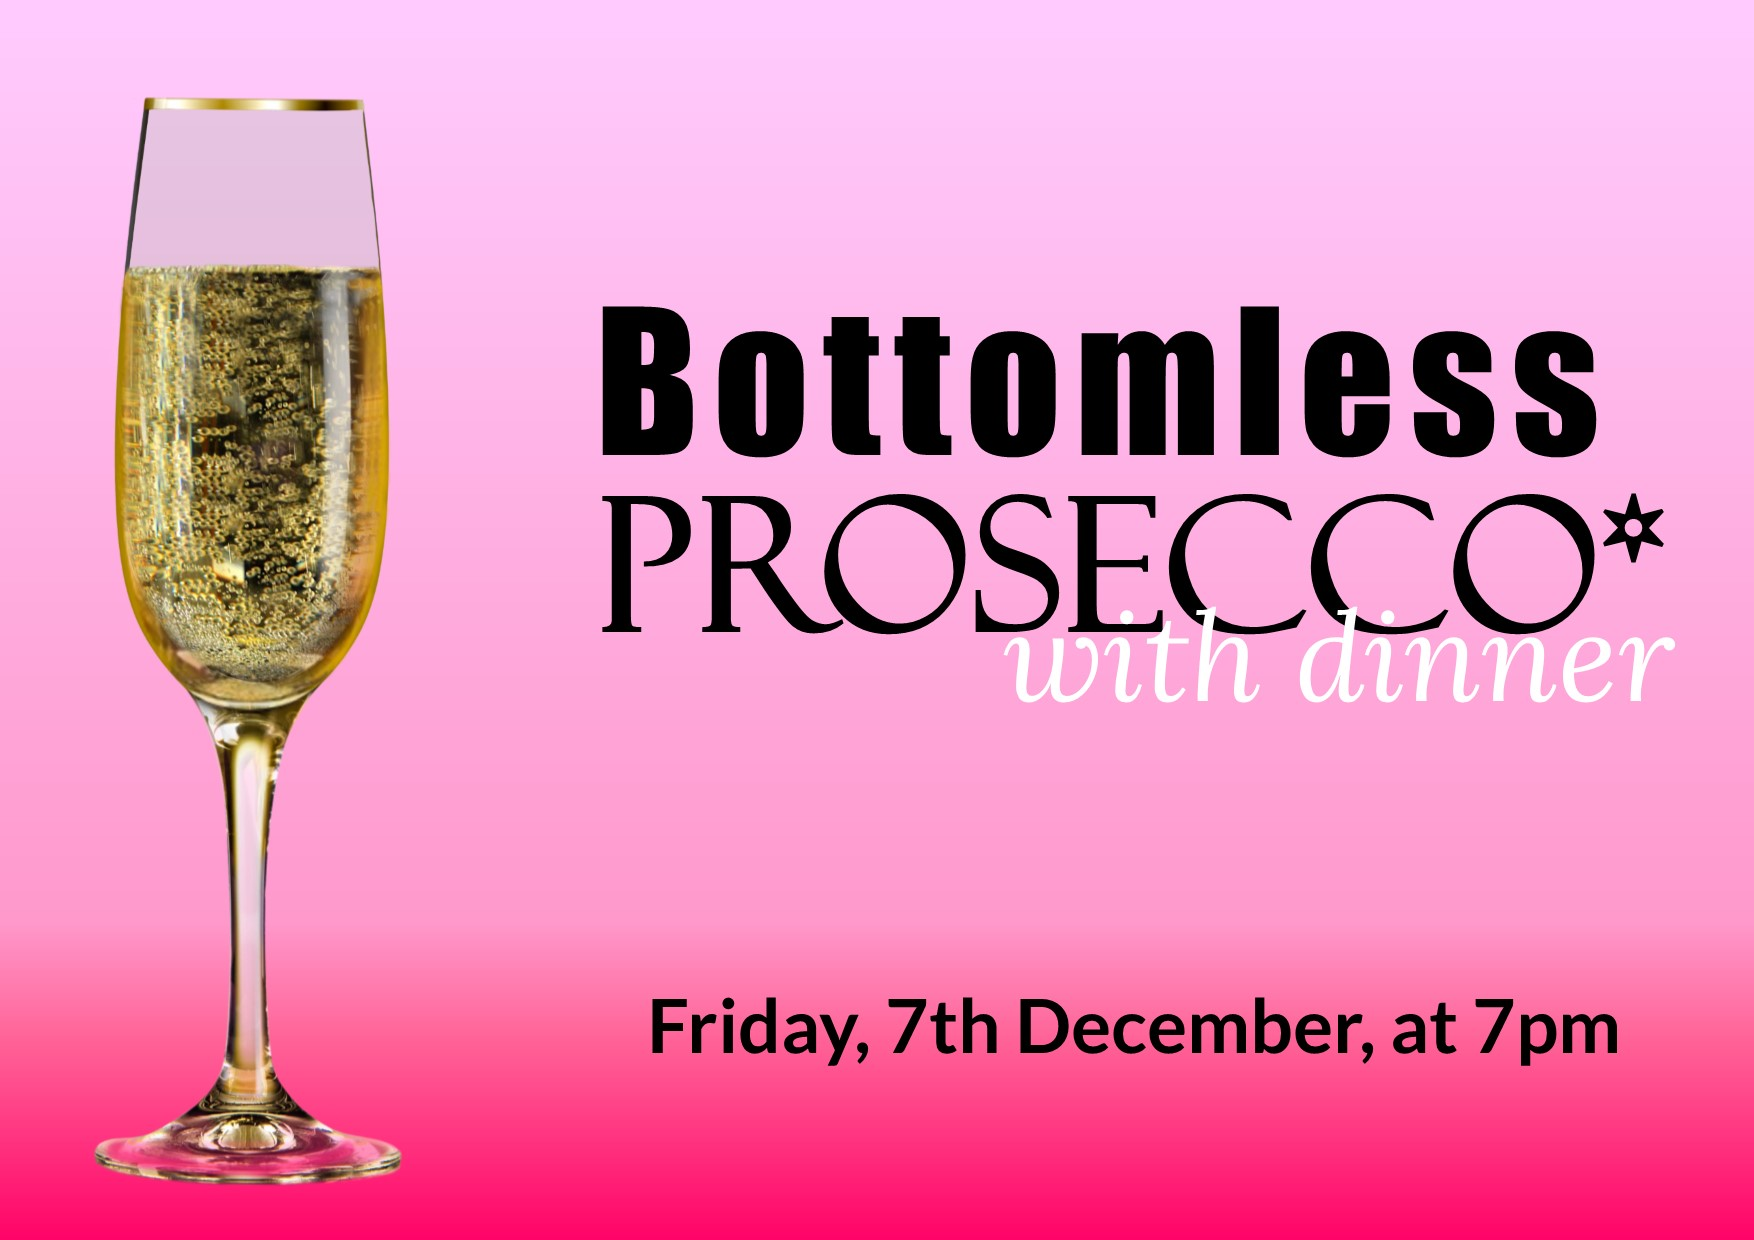 Bottomless Prosecco with dinner